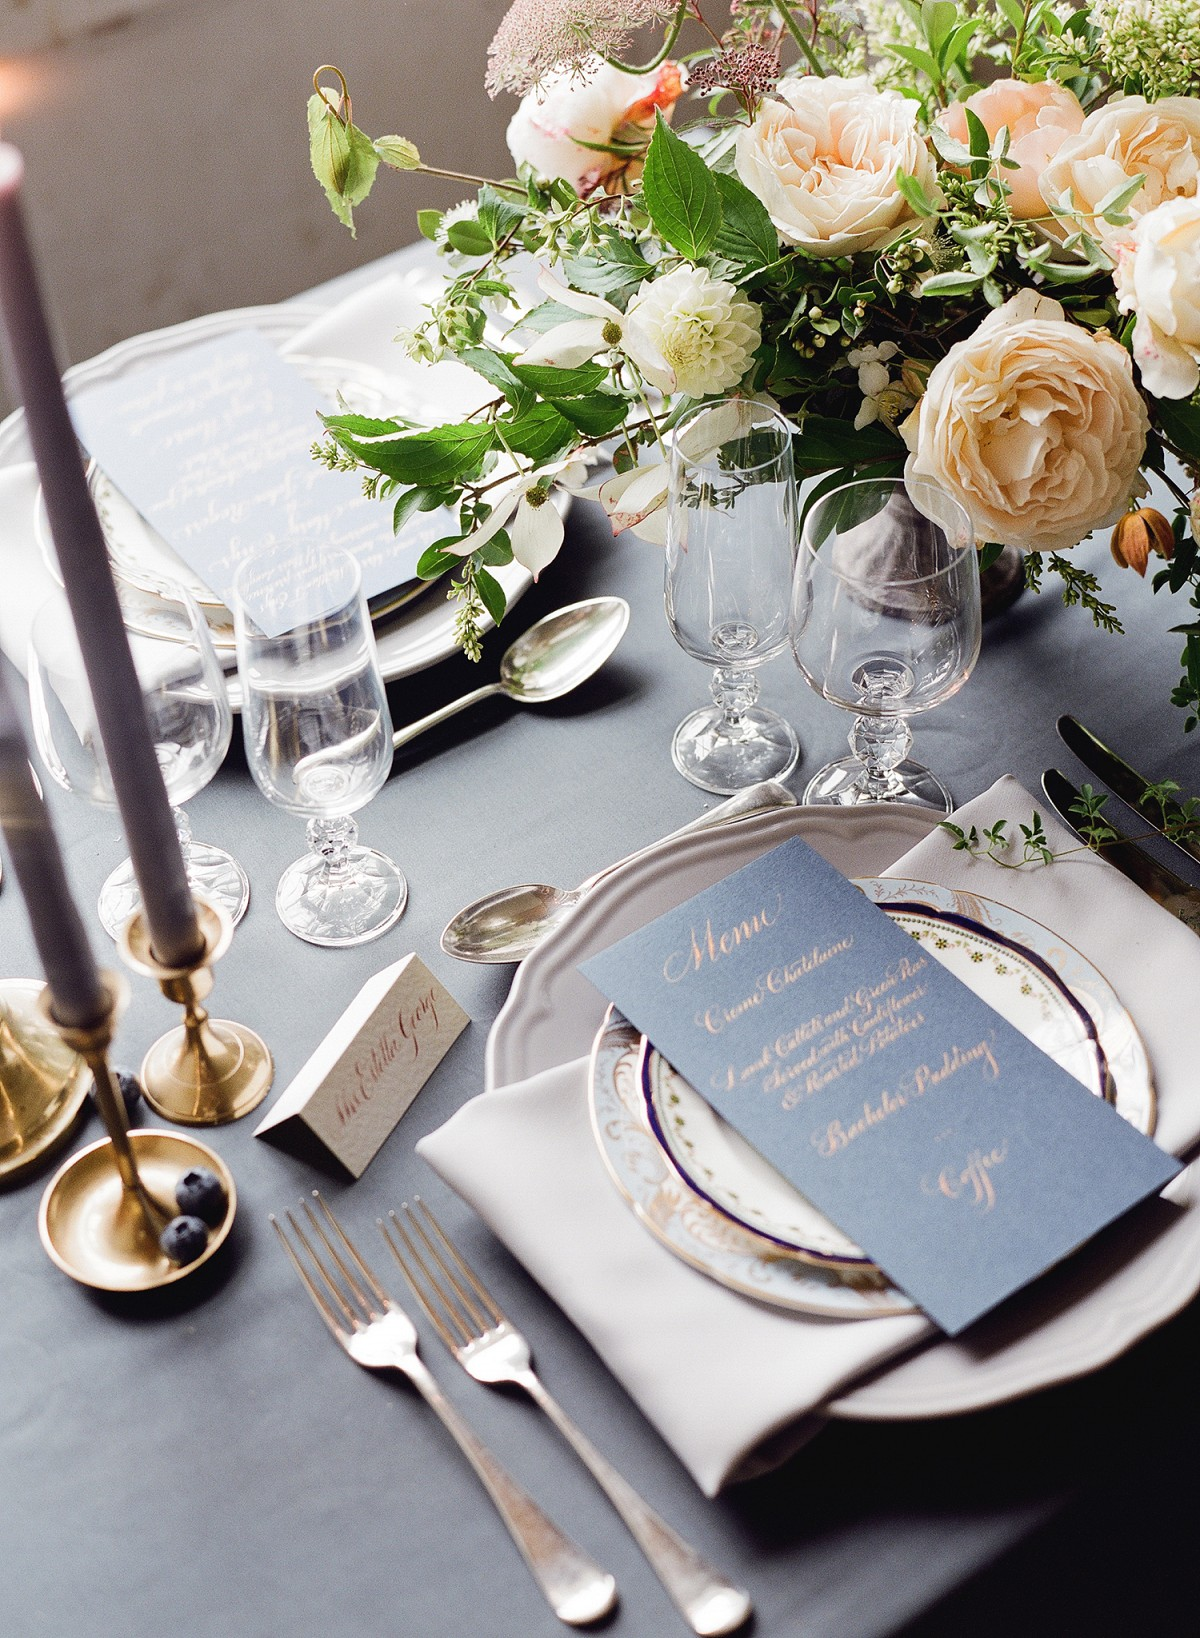 Echoes at Enys Estate Wedding Inspiration by Taylor & Porter on Wedding Sparrow